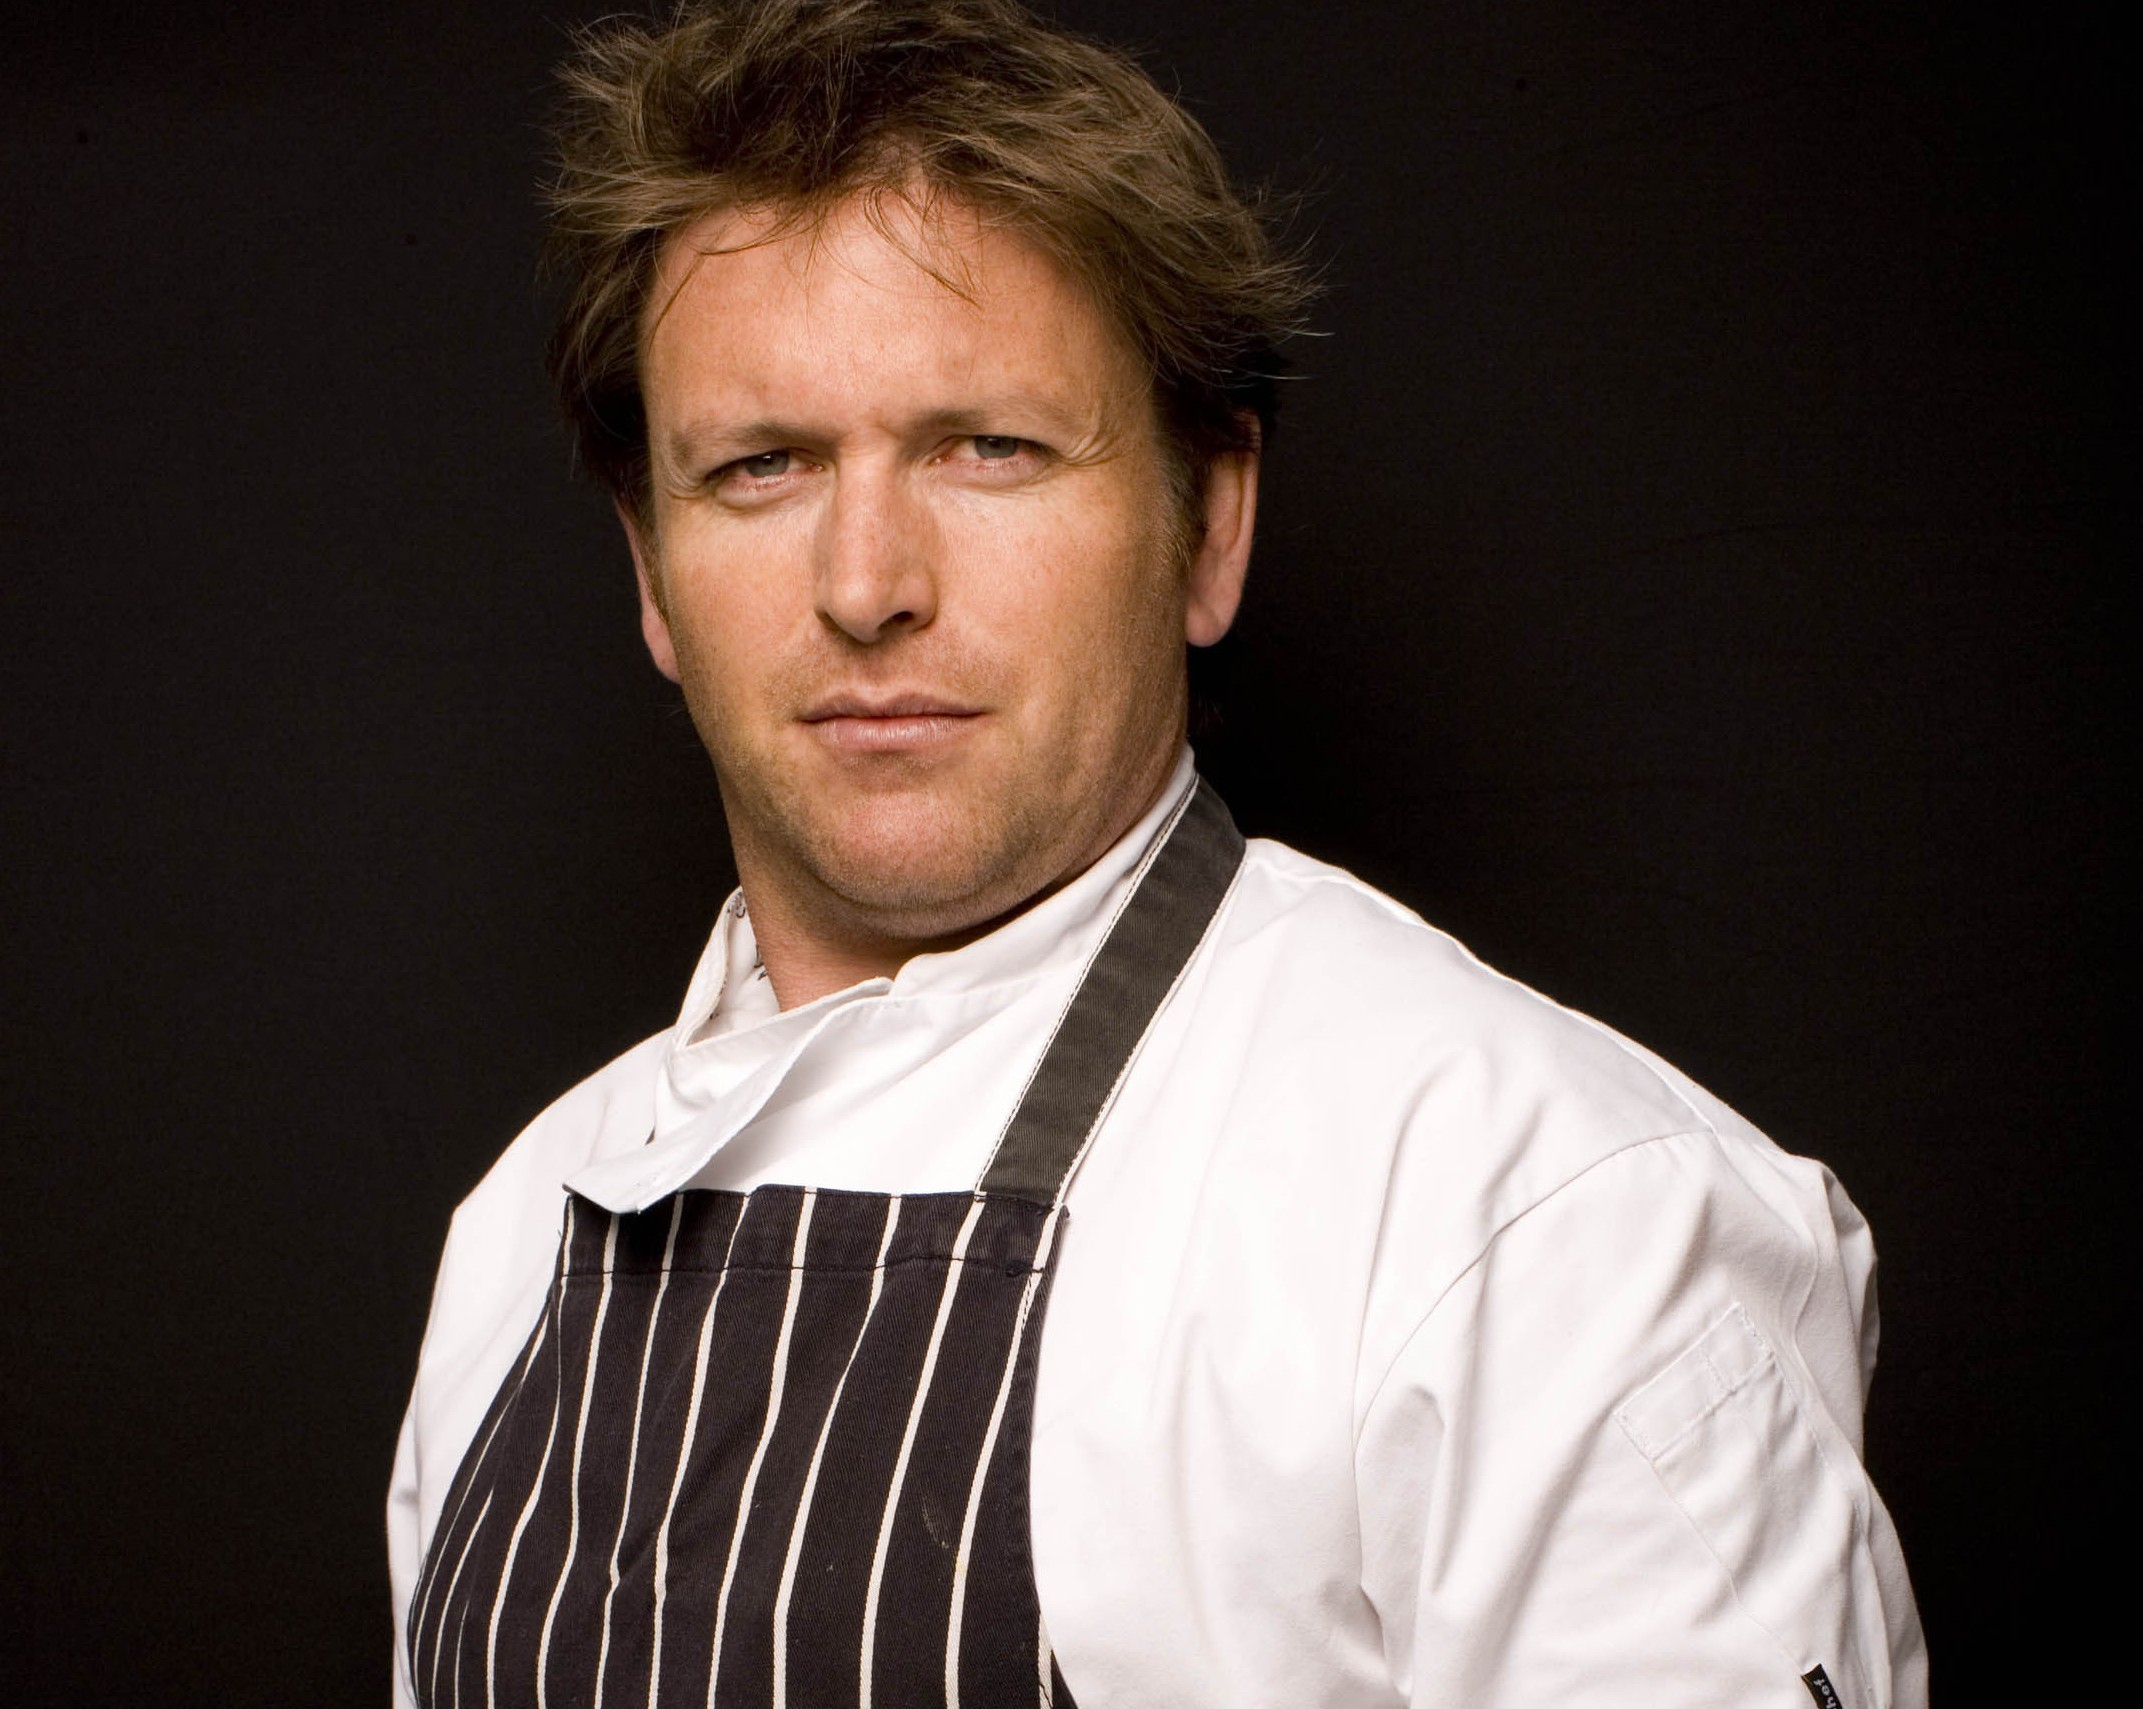 The winners of both heats will receive a trophy and the title of Taste of Grampian Rising Star from celebrity chef James Martin at 12.15pm.